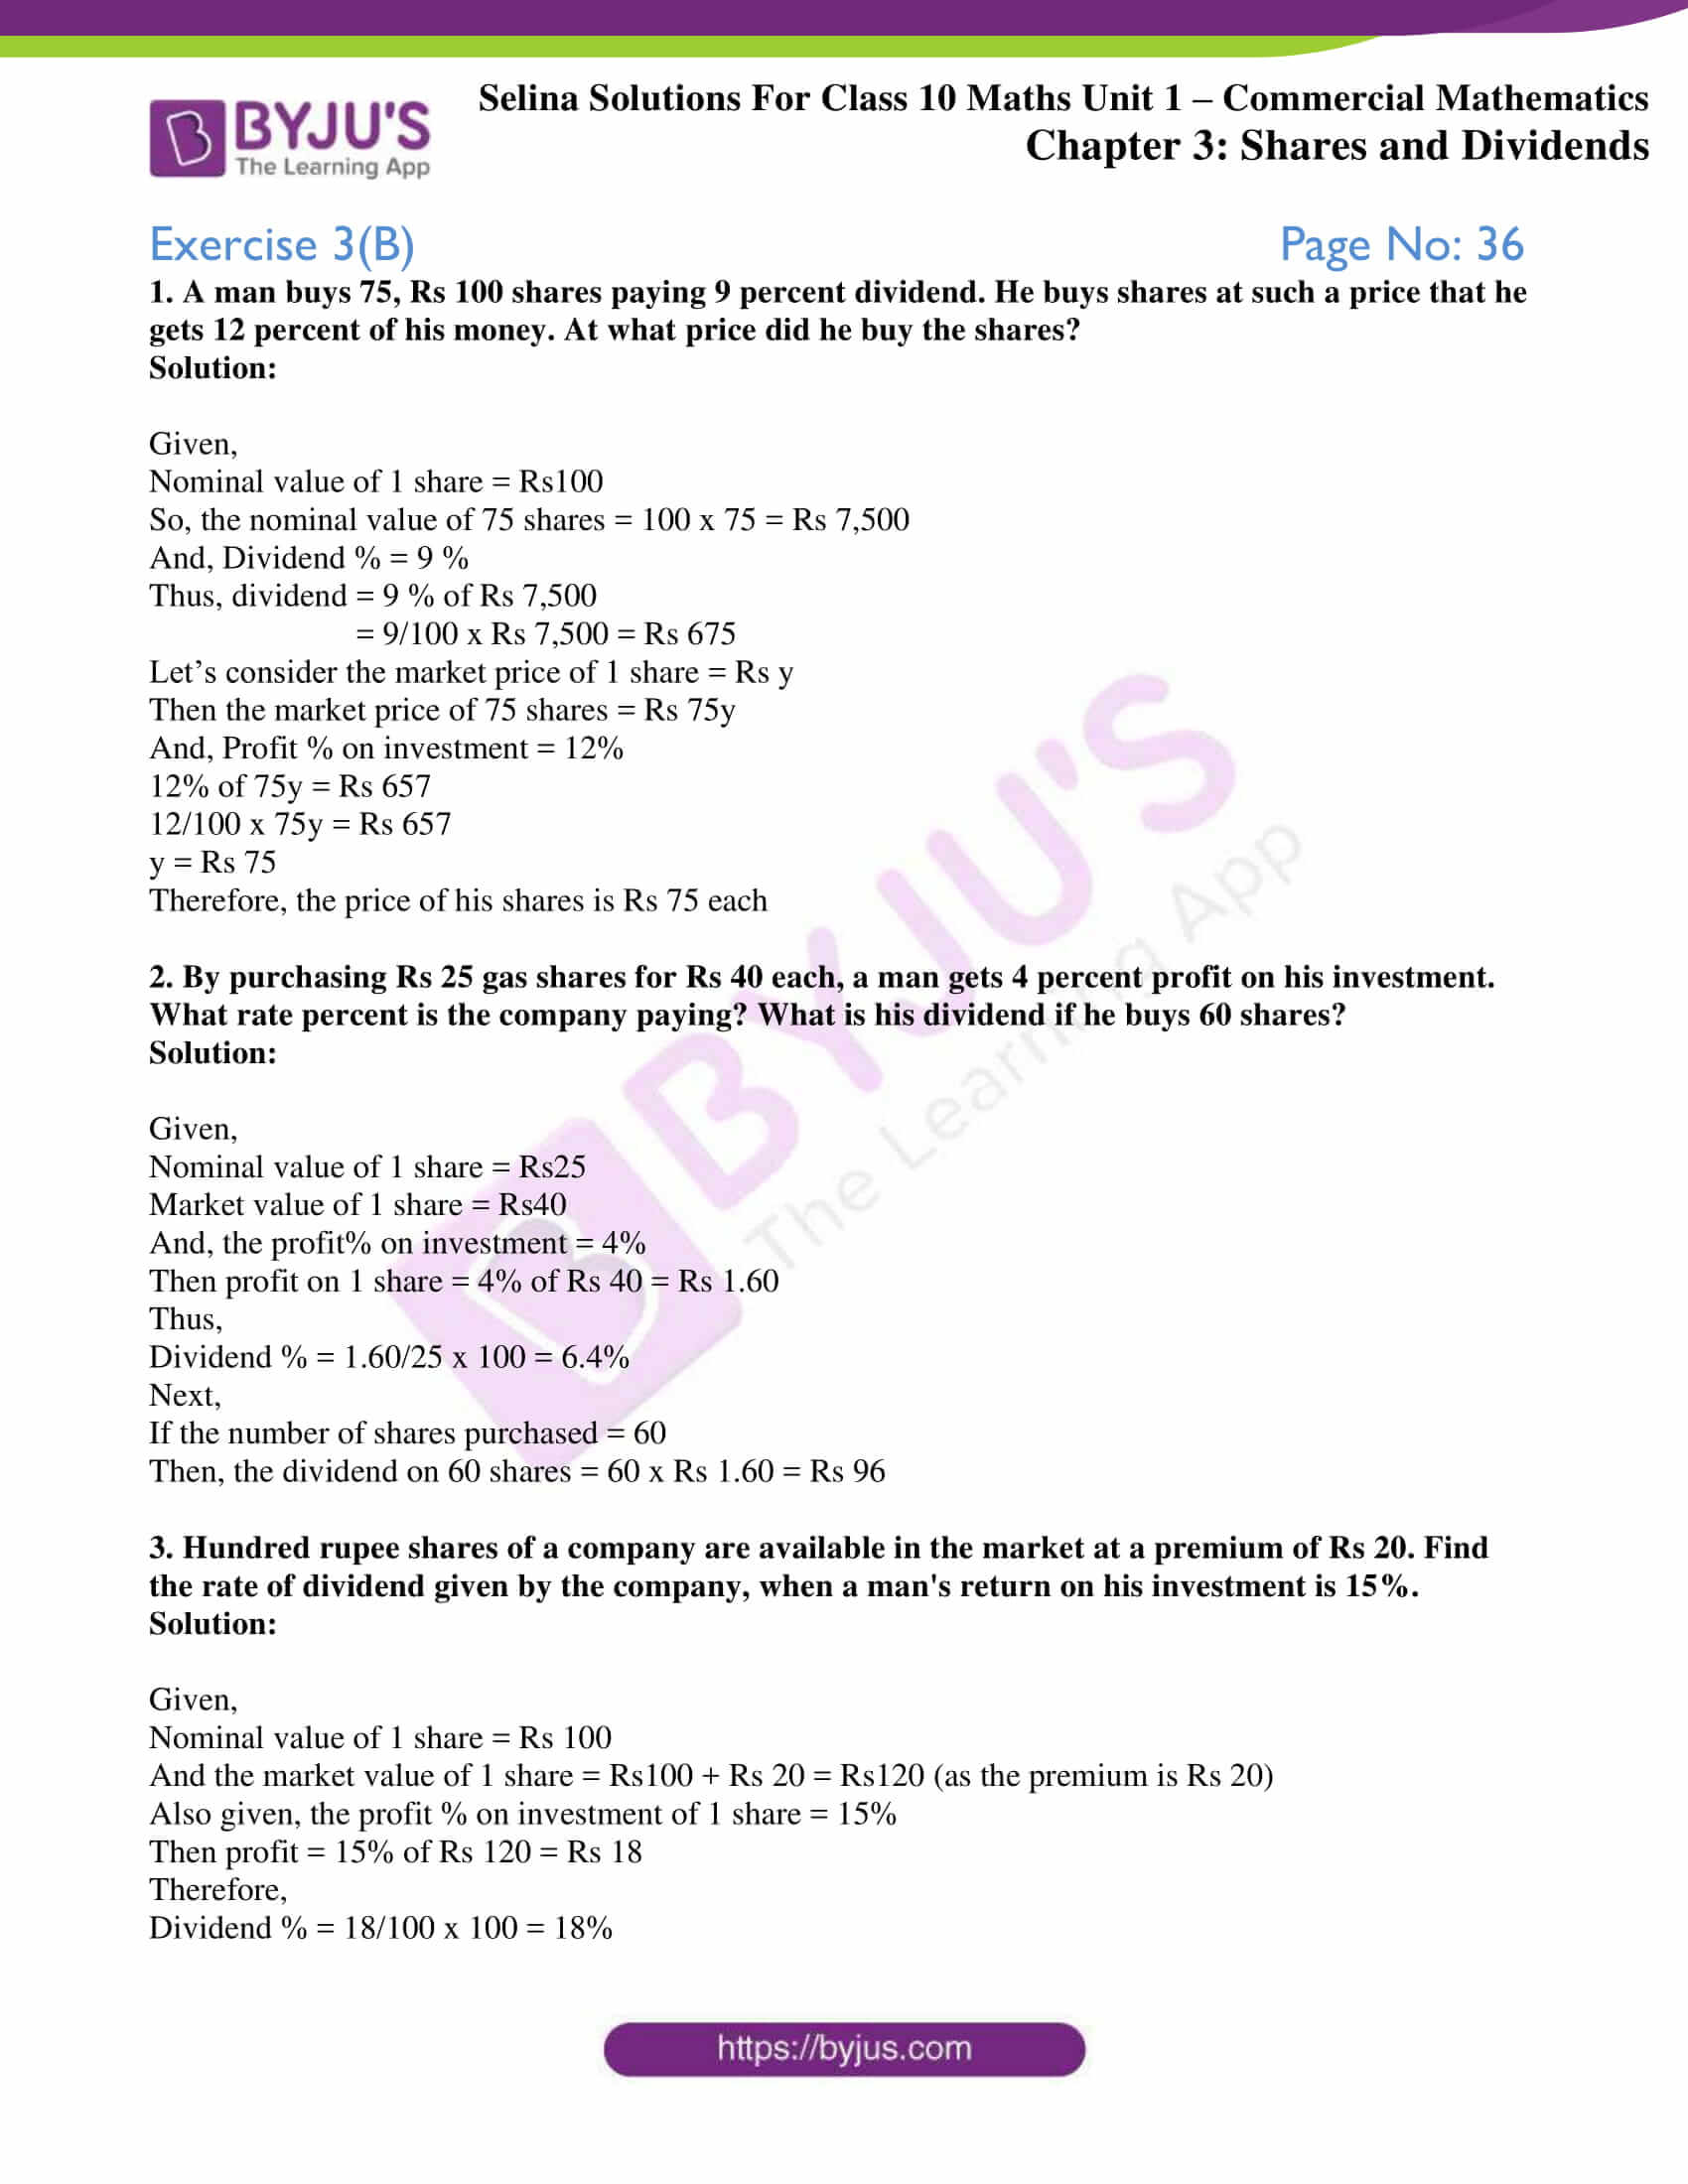 selina solution concise maths class 10 chapter 3b